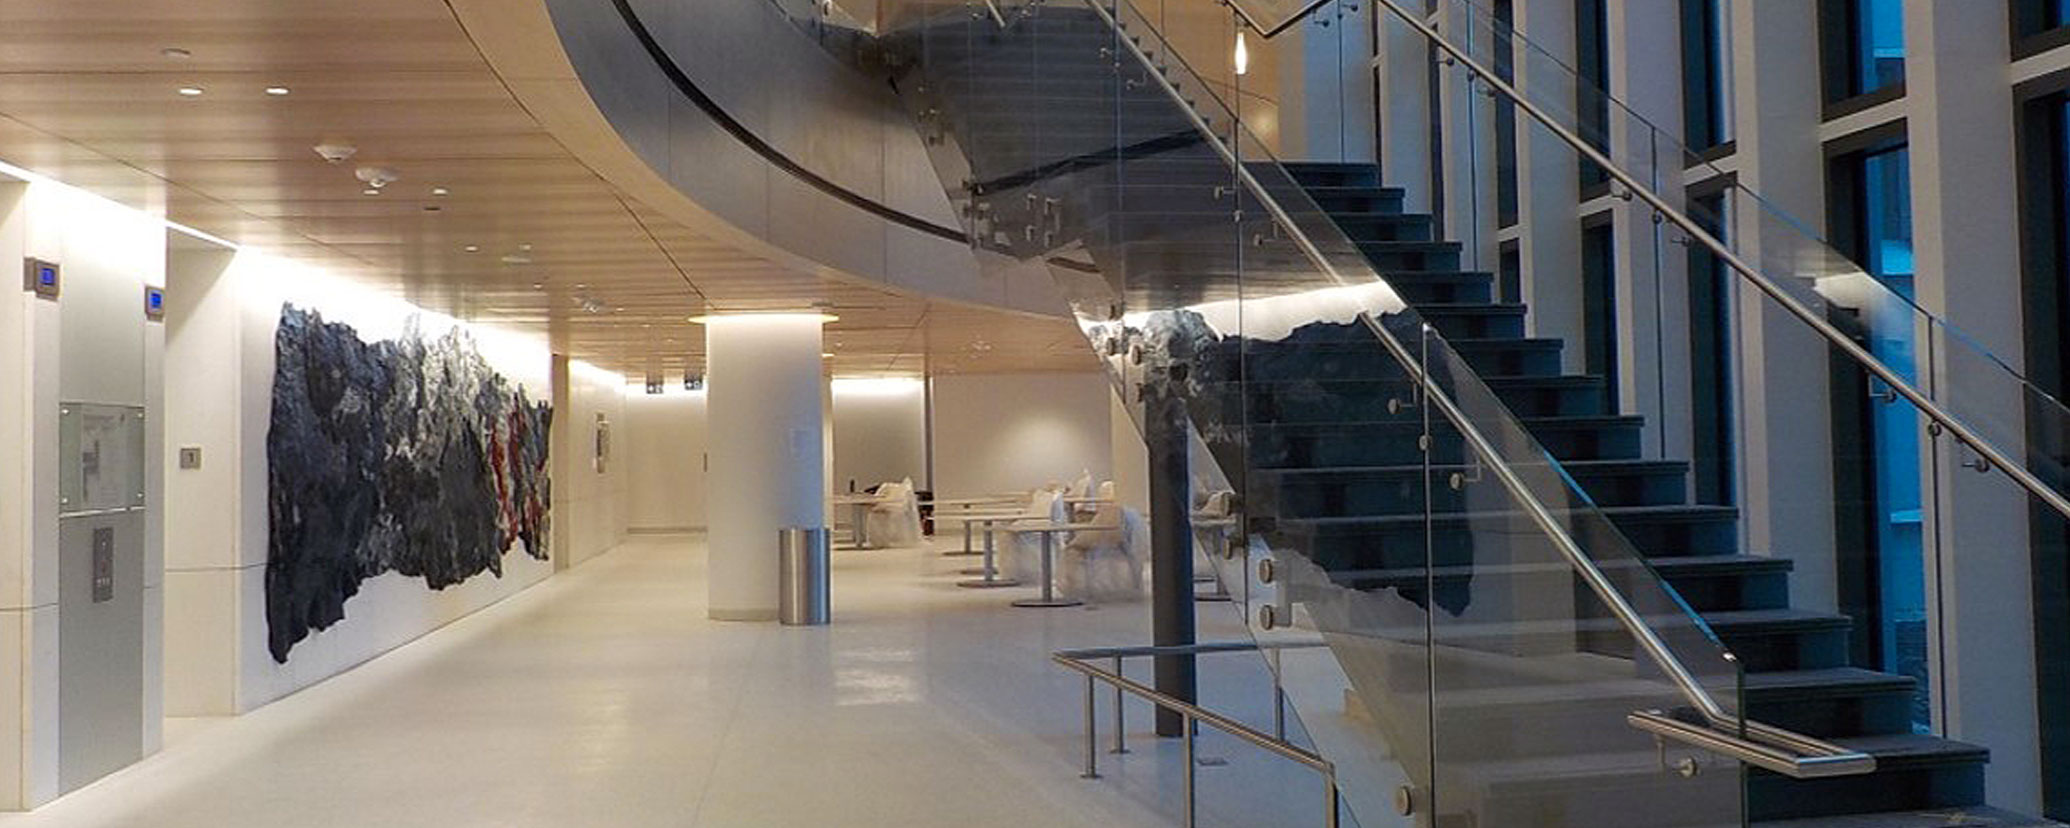 Caddell Construction - New U.S. Embassy in The Hague, Netherlands